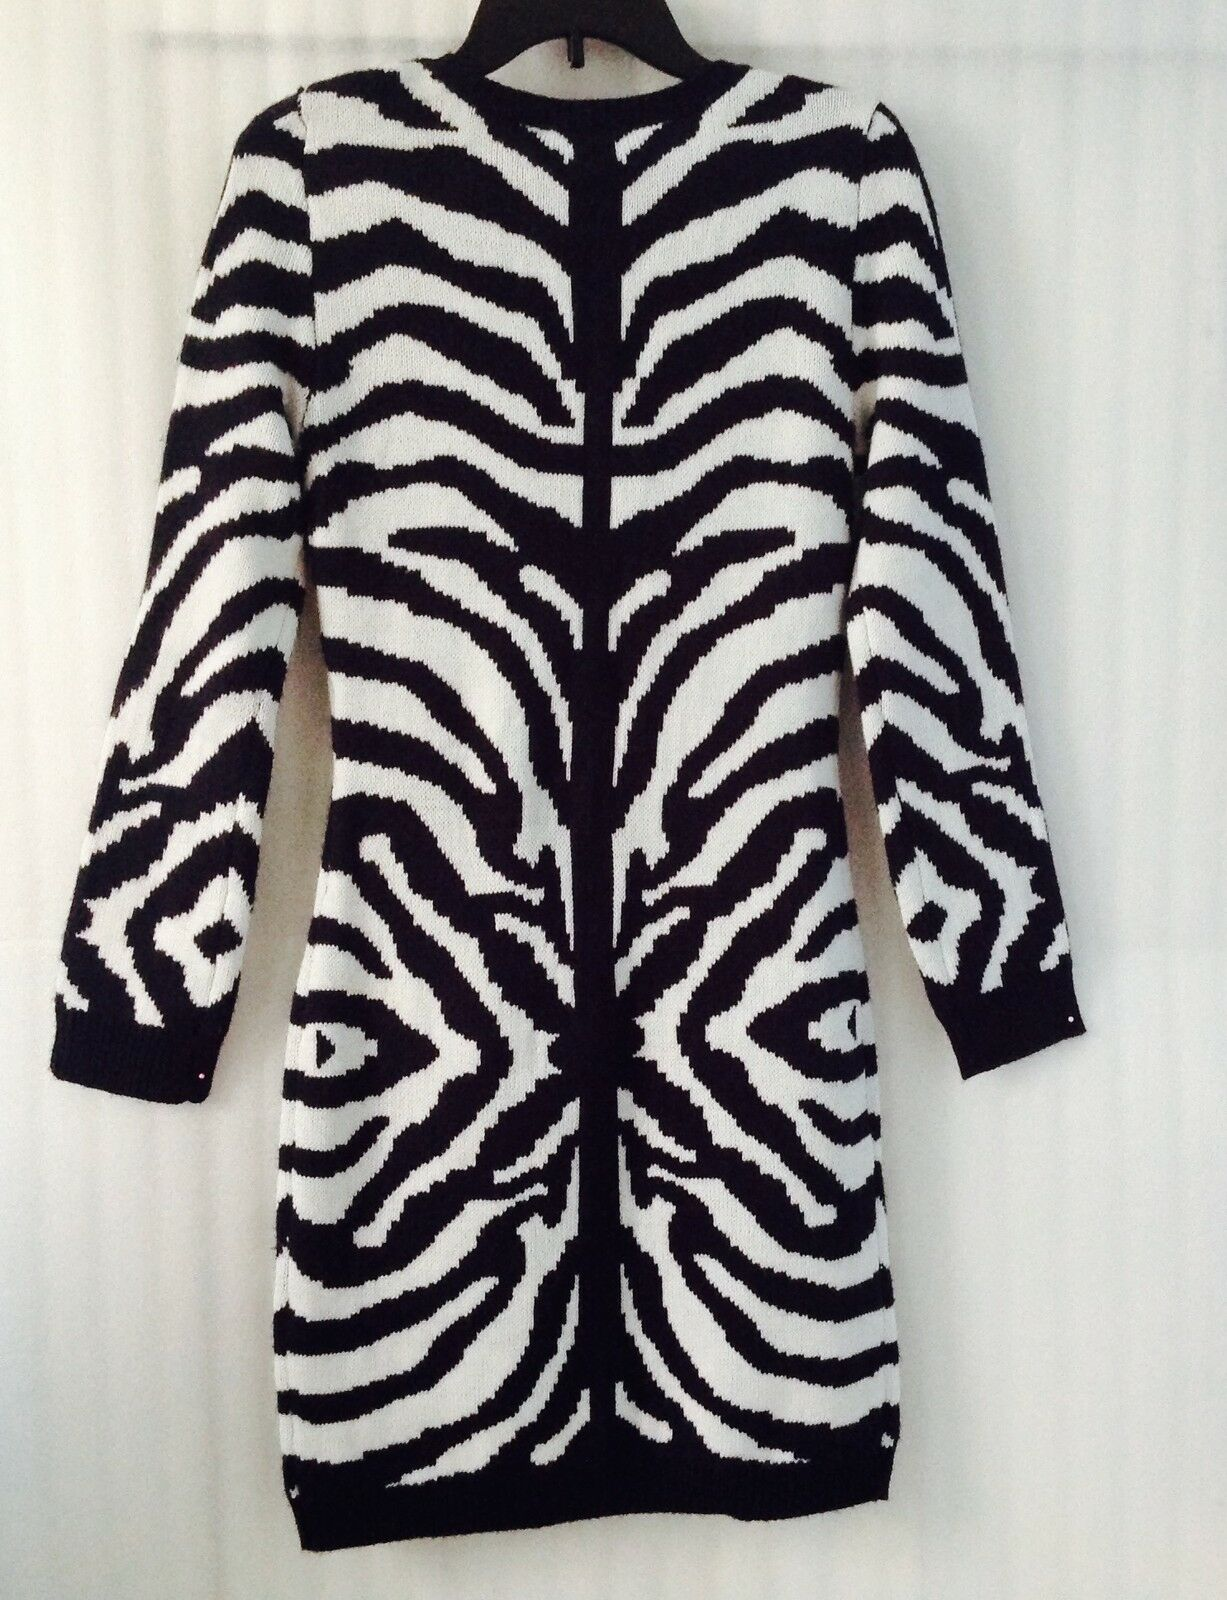 Romeo & Juliet Couture Woman Knit Dress Navy Ivory size M Long Sleev New